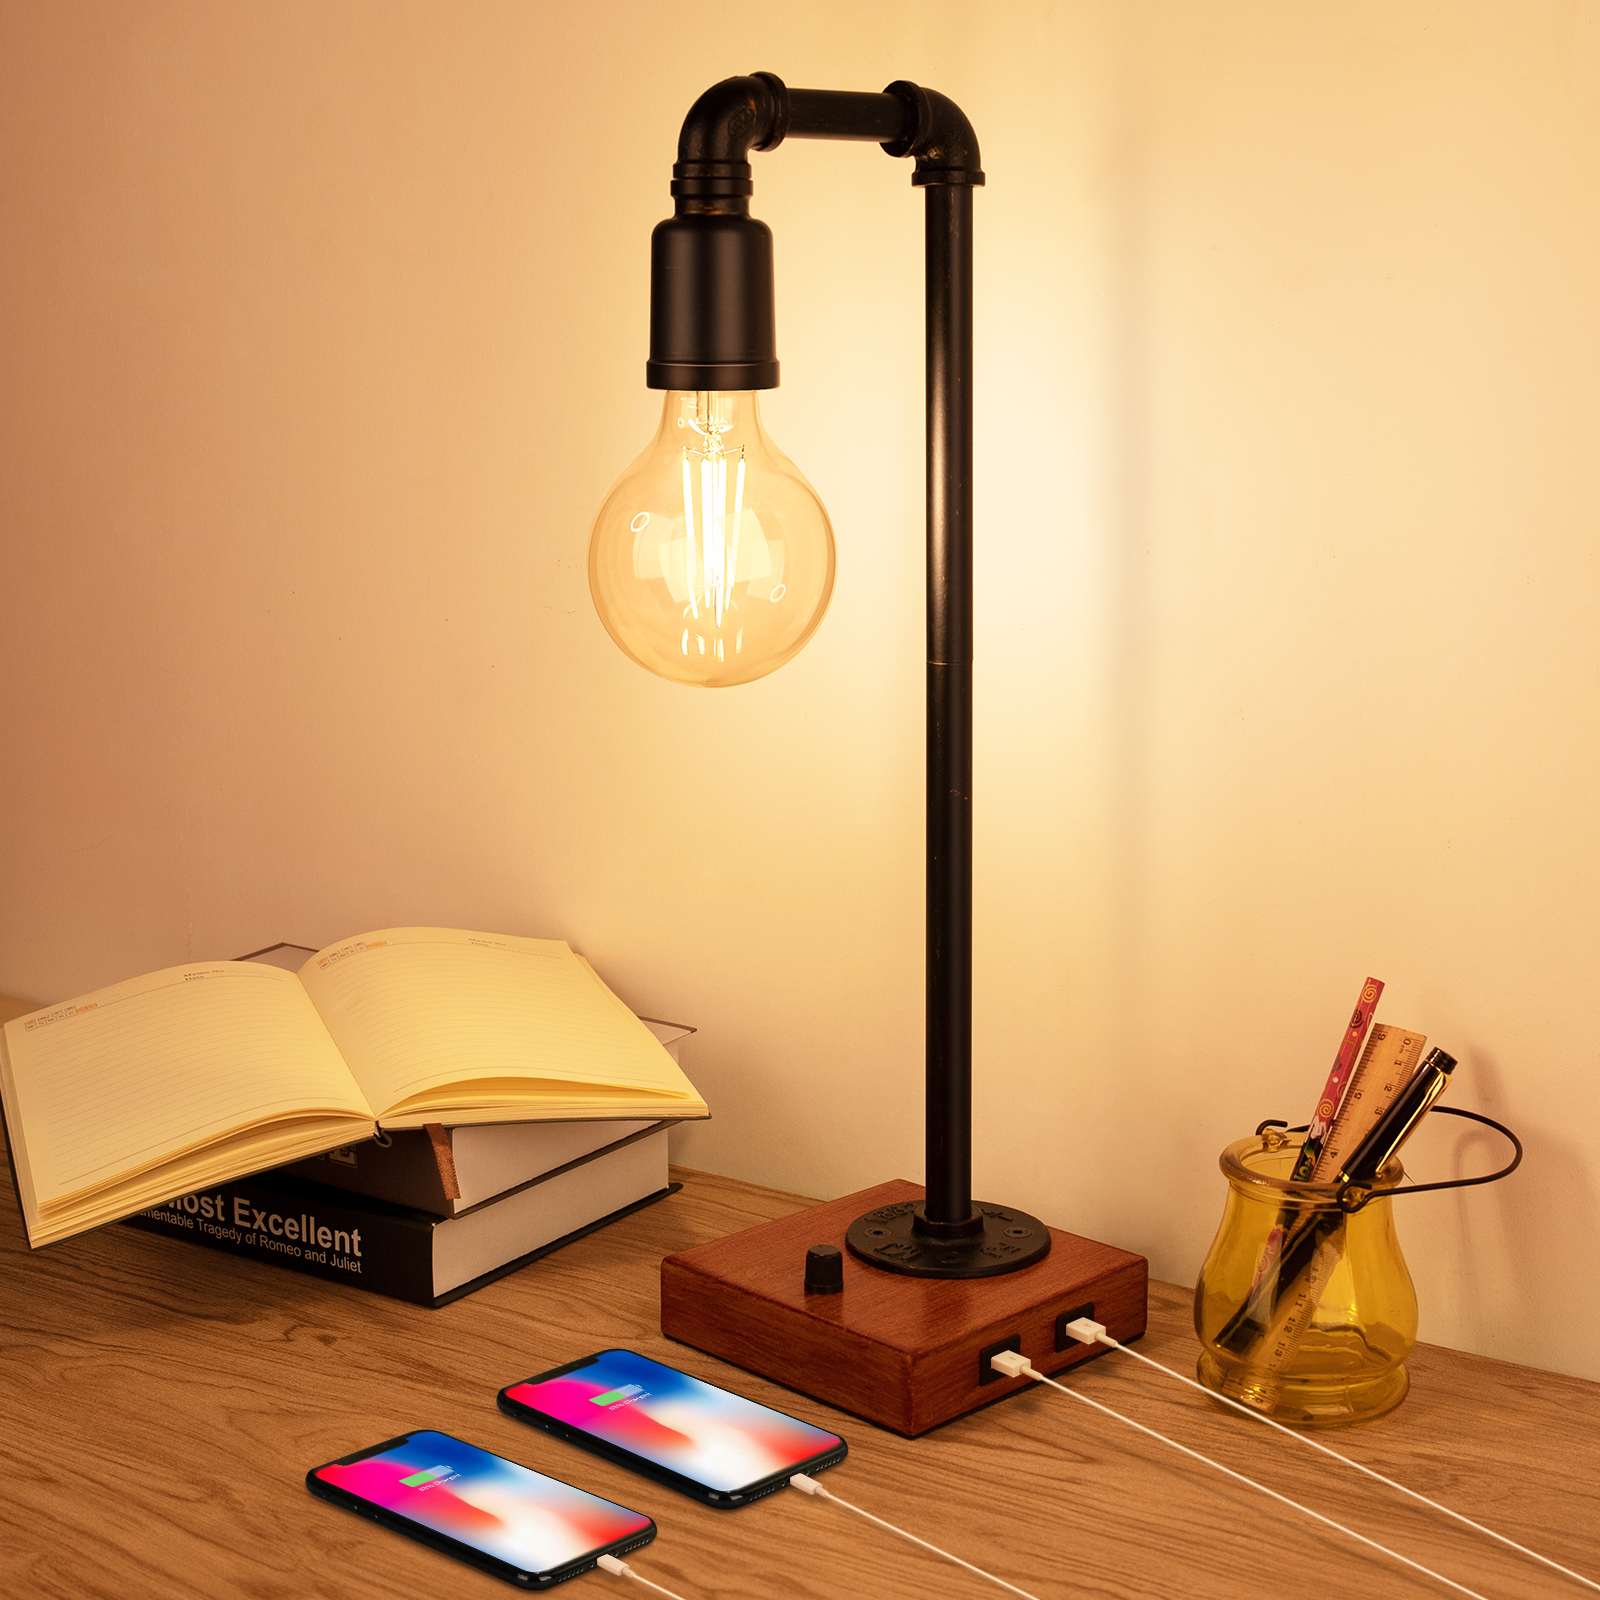 Rustic Steampunk Lamp with 2 USB Charging Port